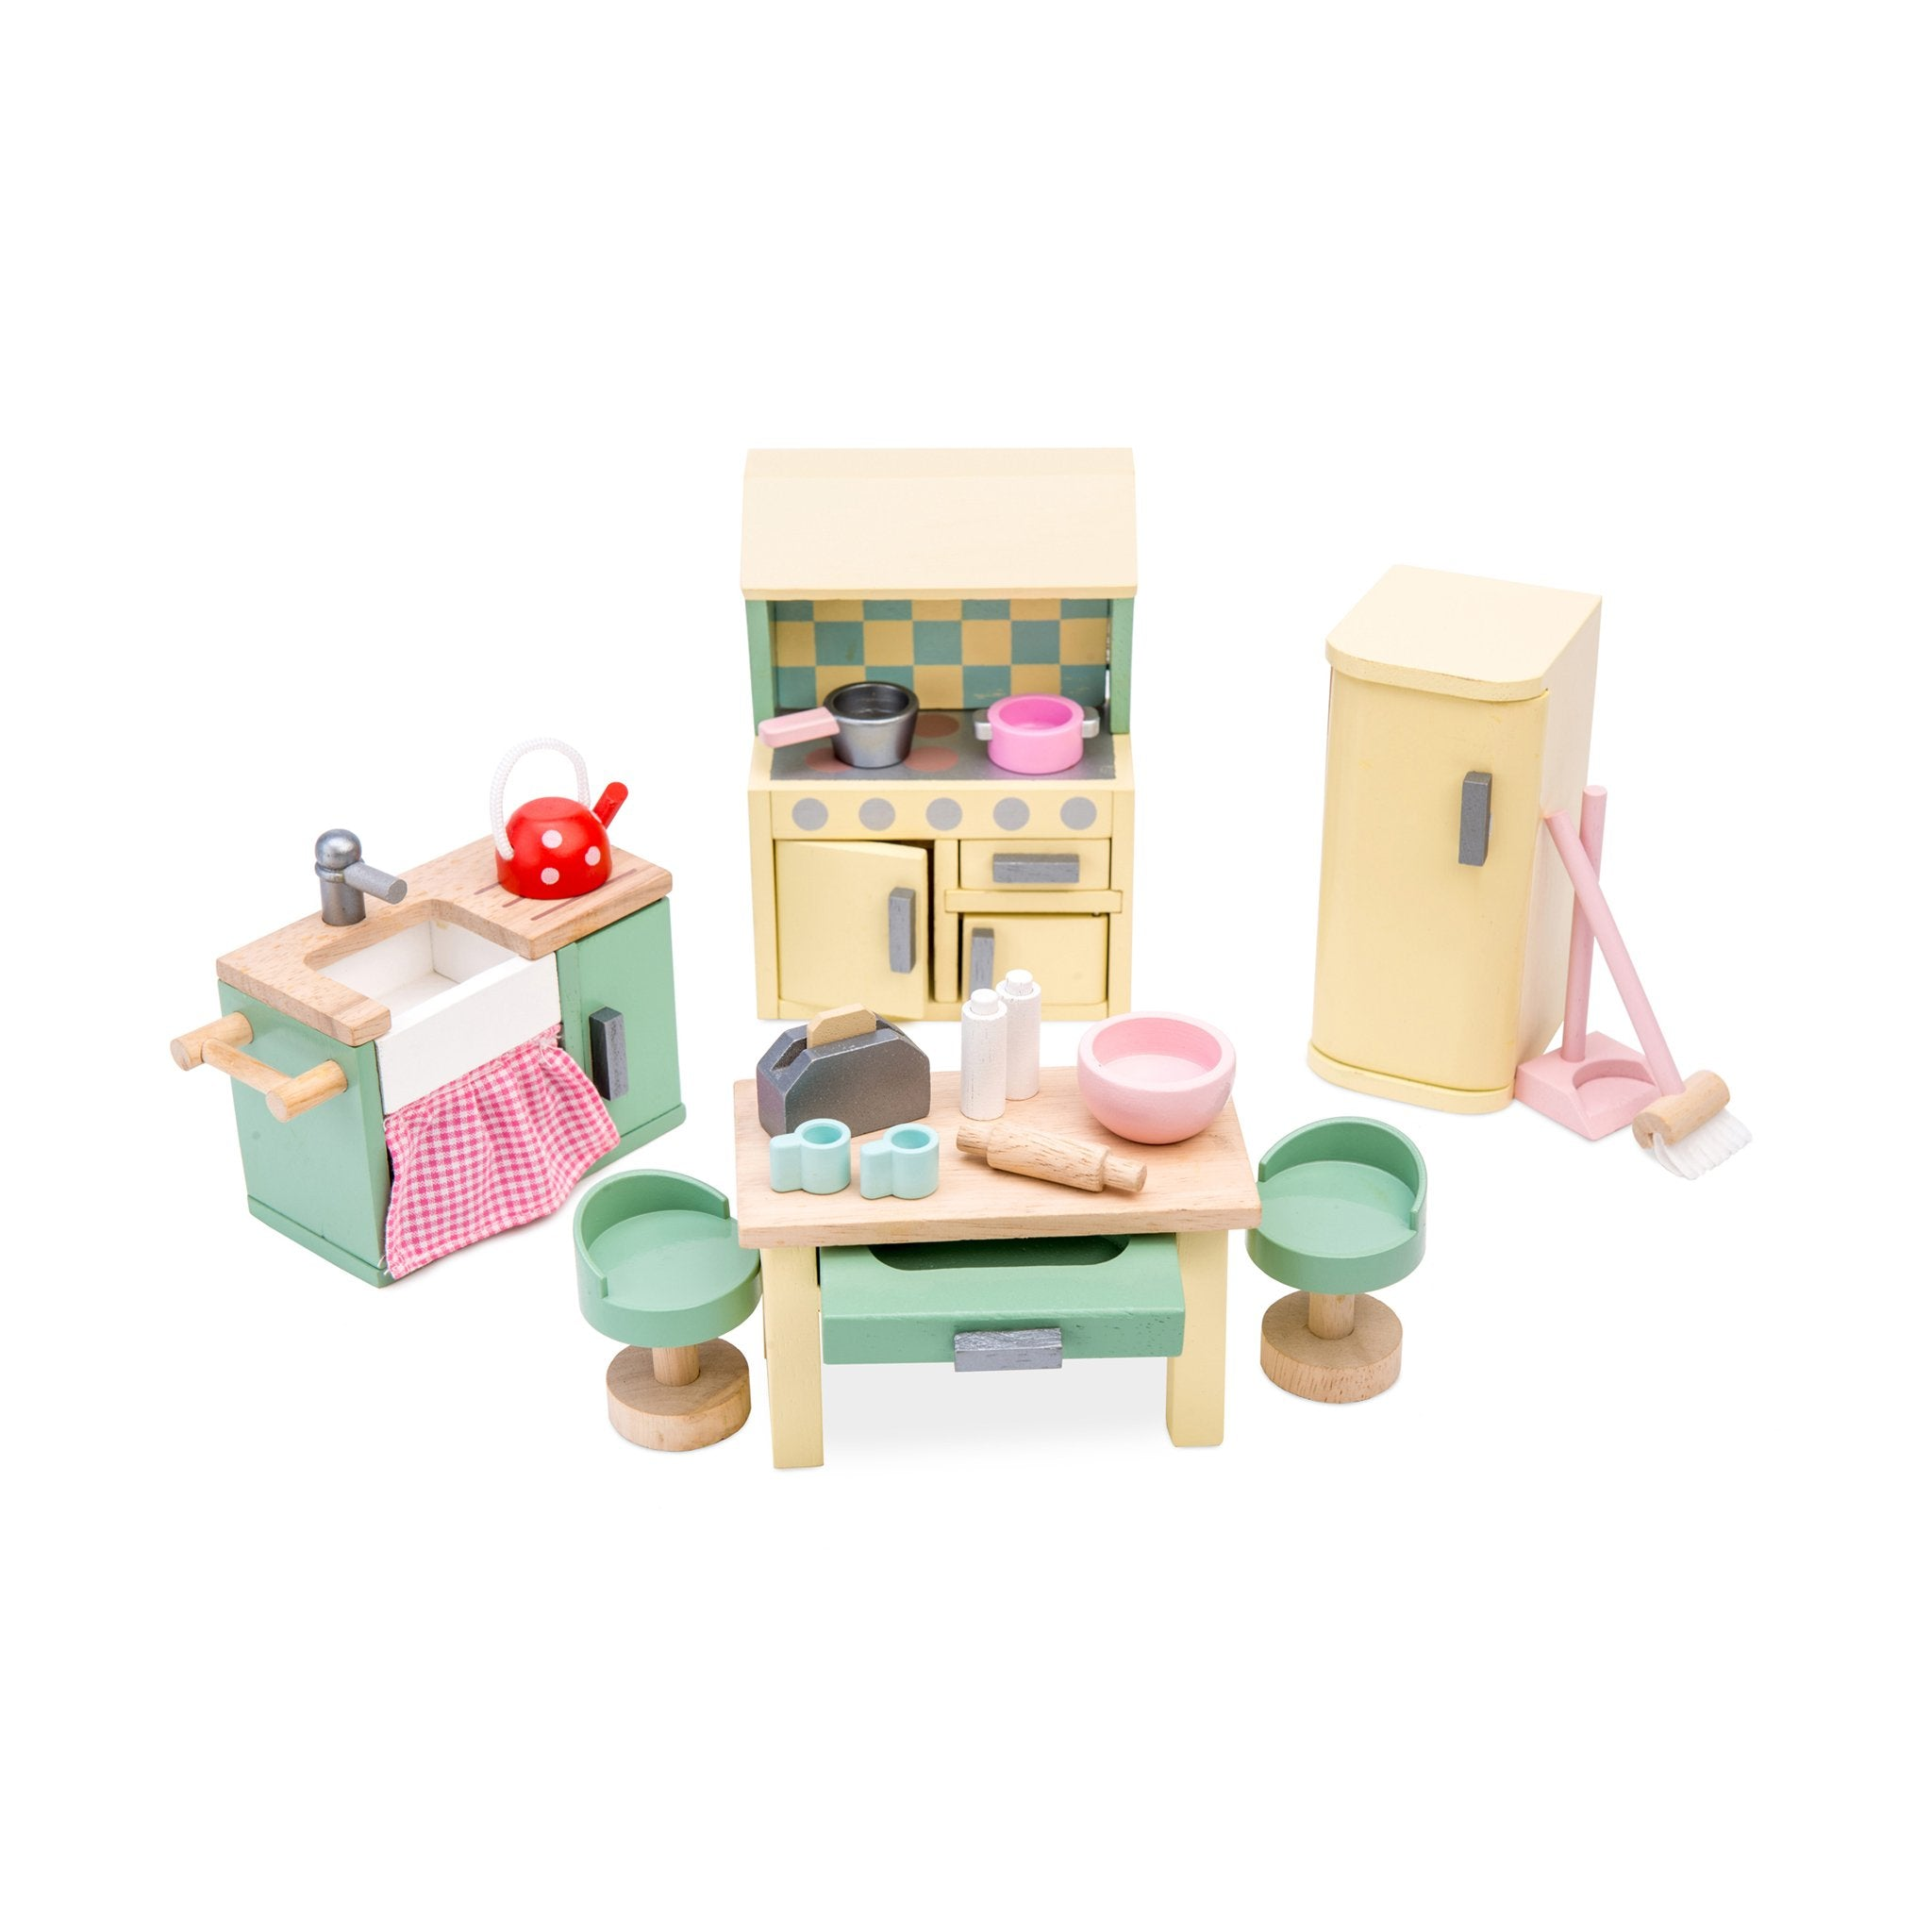 Daisylane Kitchen Wooden Dollhouse Furniture